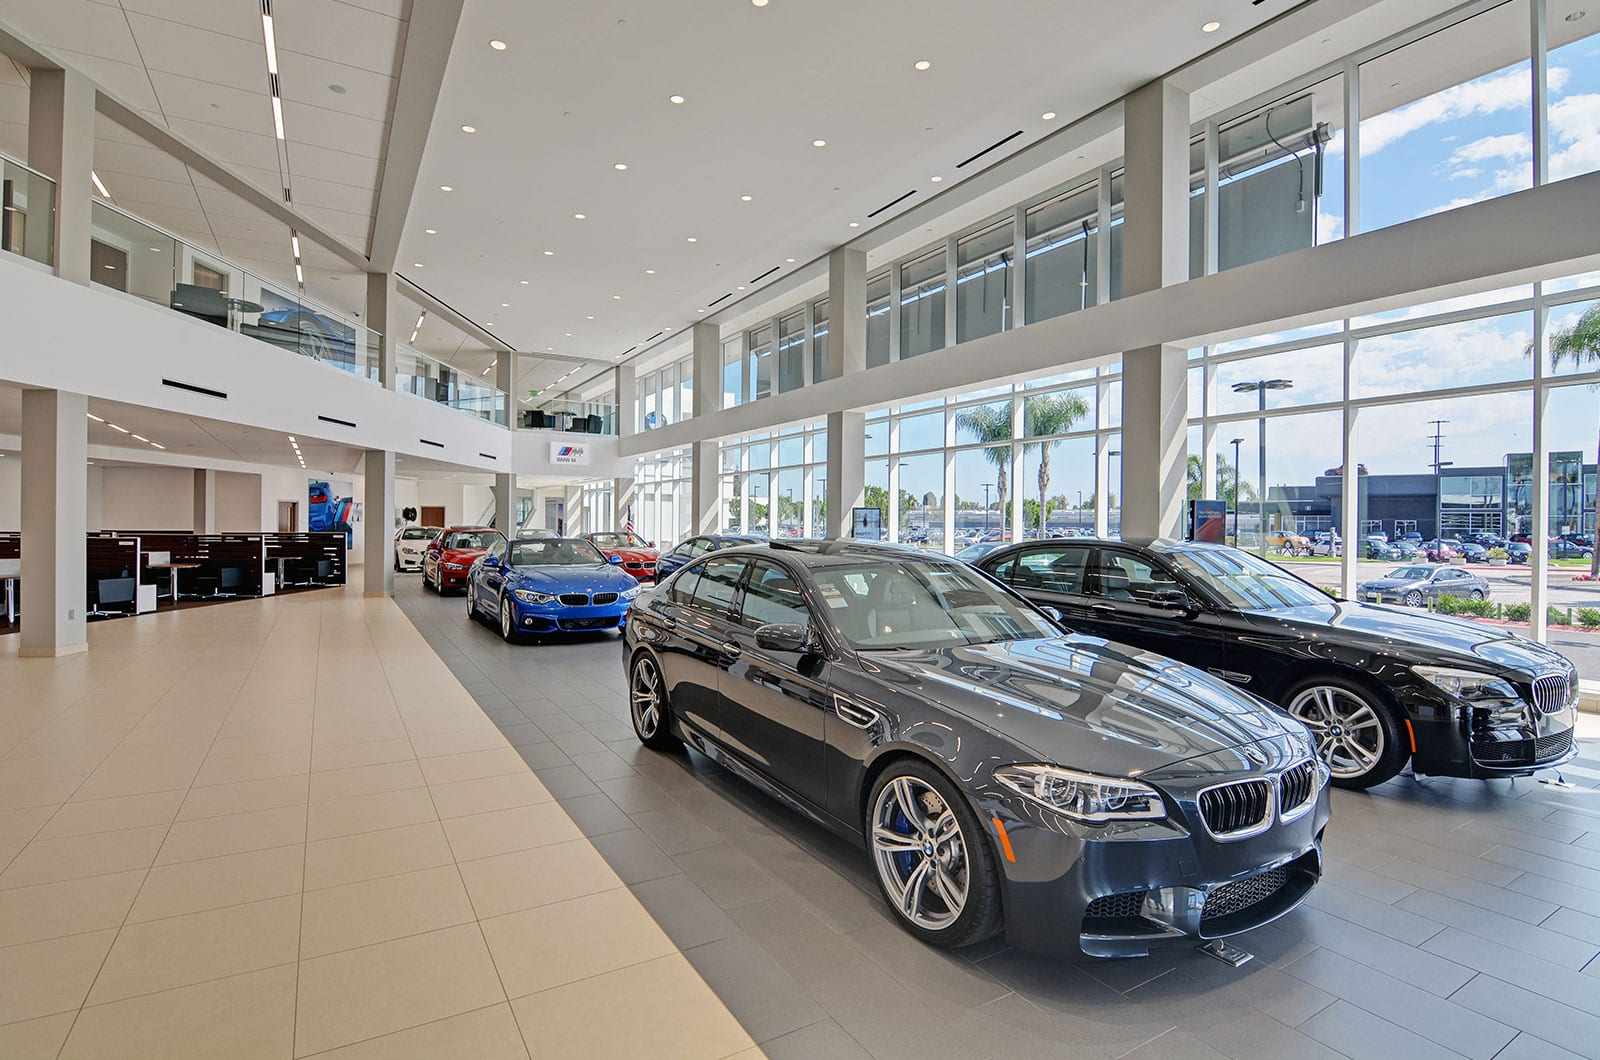 bmw virtual tour auto dealership virtual tour. Black Bedroom Furniture Sets. Home Design Ideas